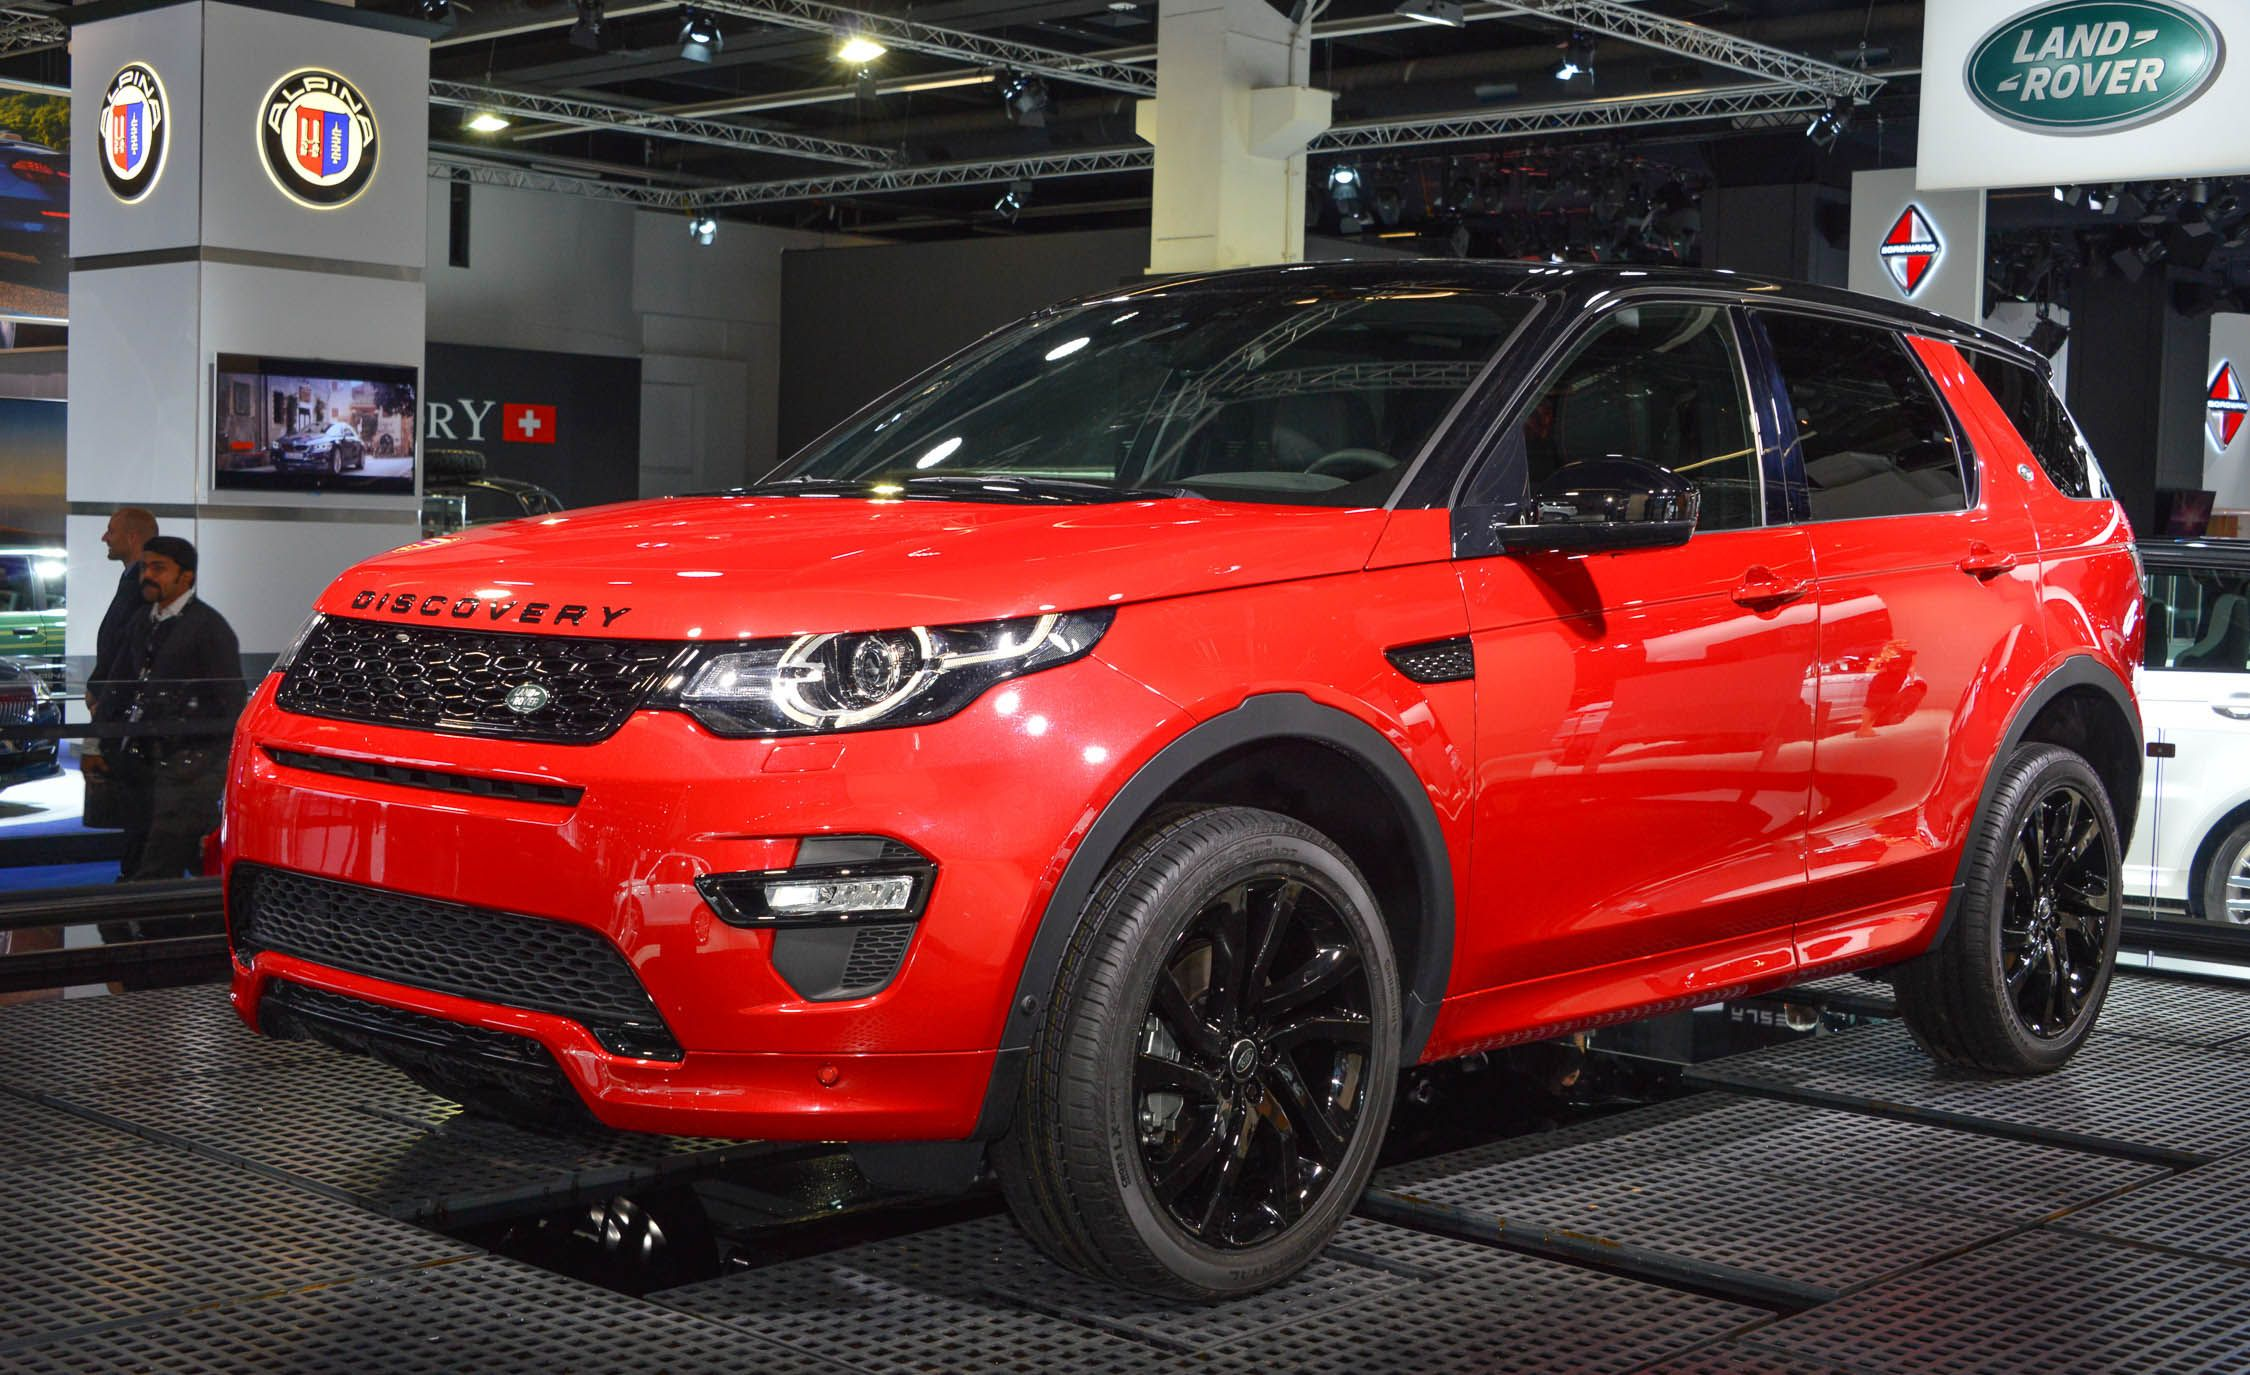 2016 Land Rover Discovery Sport Gallery